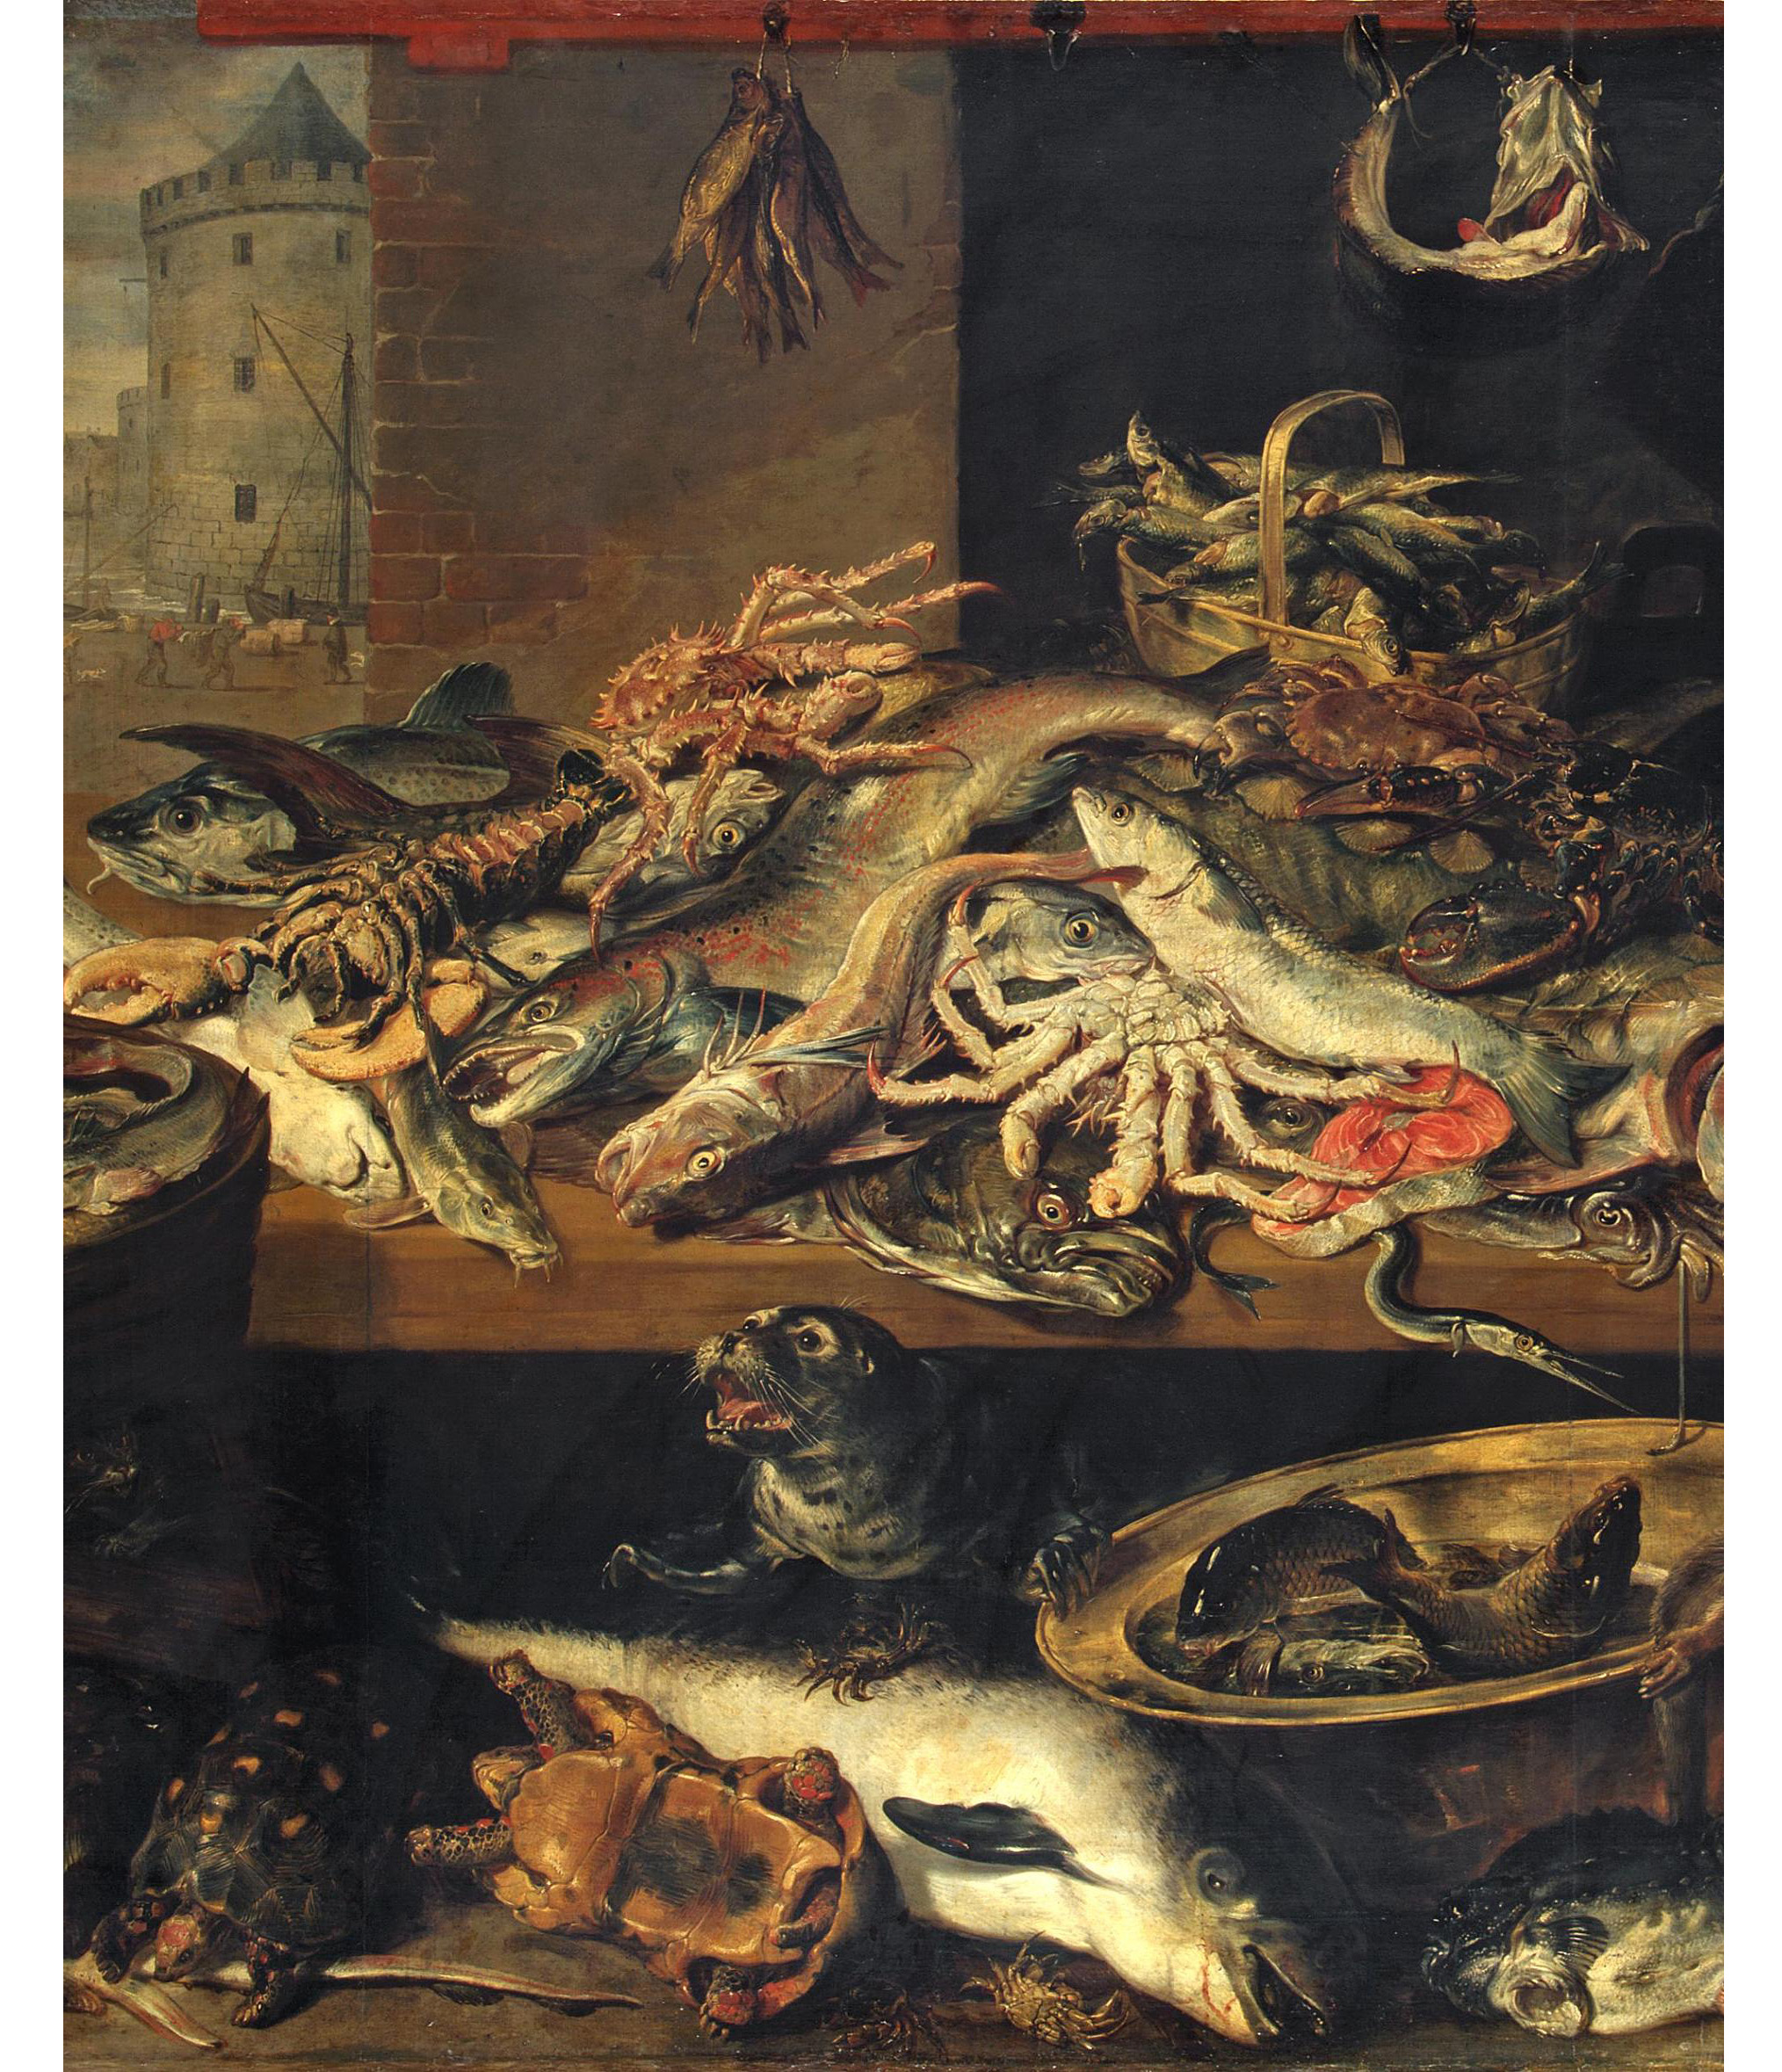 Frans Snyders (1579 - 1657) Fish Shop, 1621